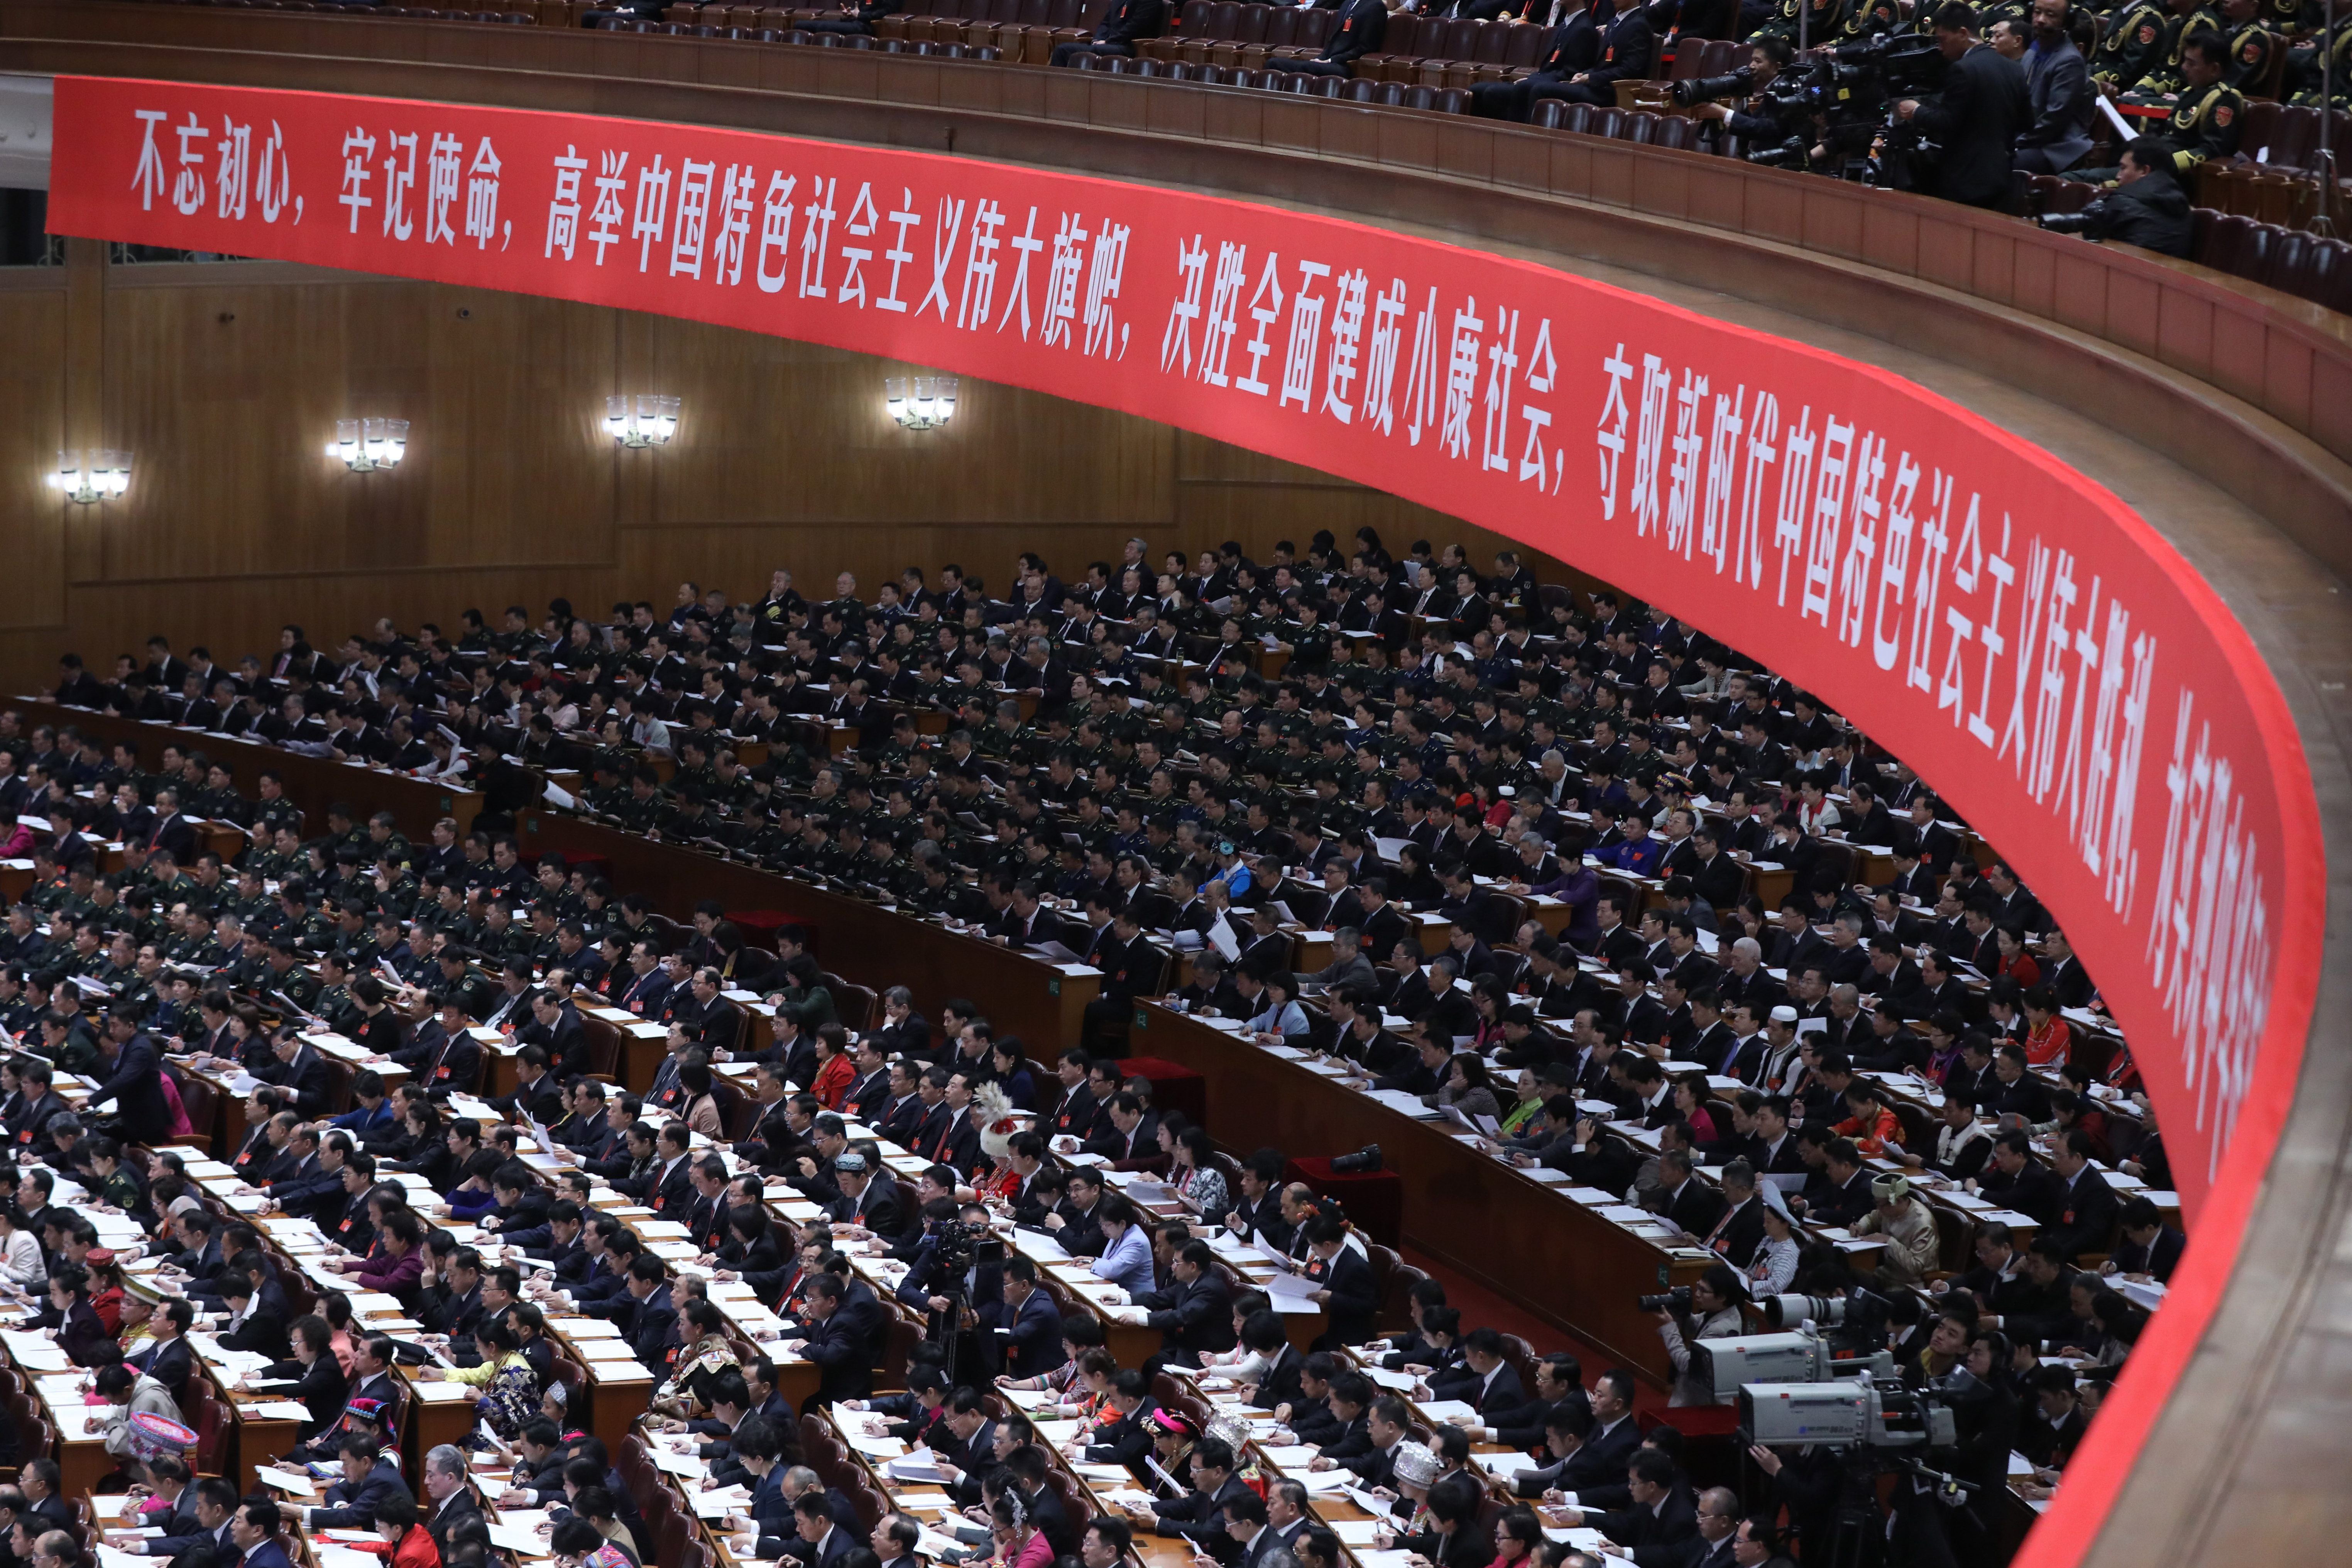 Delegates attend the opening ceremony of the 19th National Congress of the Communist Party of China (CPC) at the Great Hall of the People (GHOP) in Beijing, China, on Oct. 18.